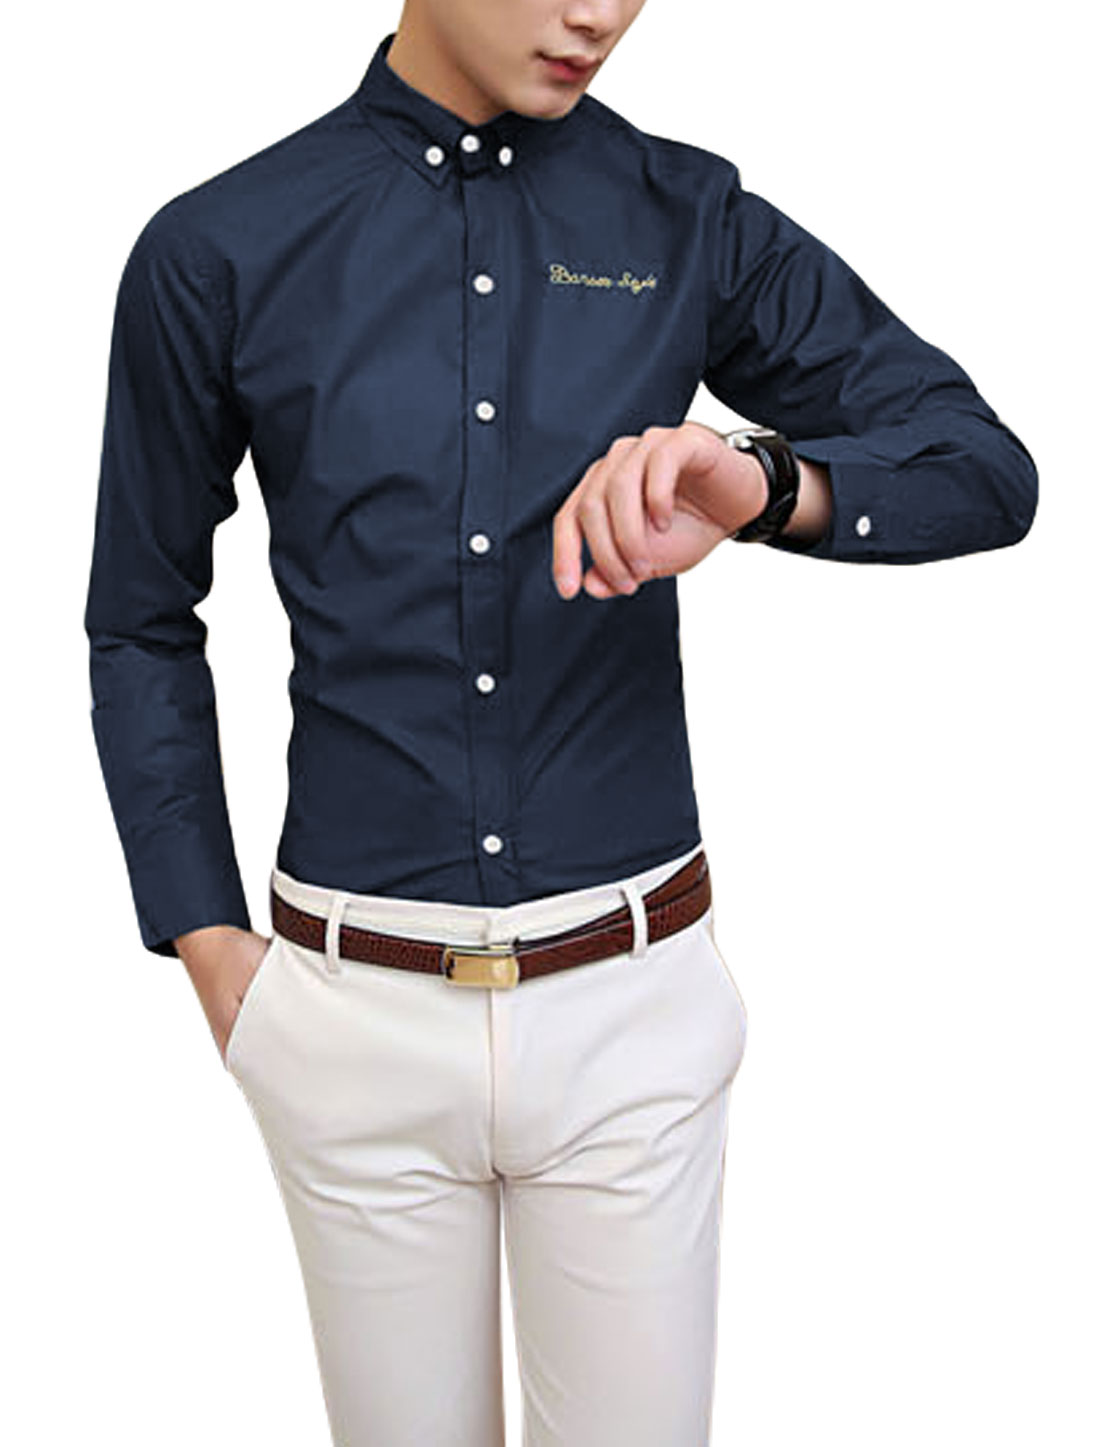 Men Point Collar Long Sleeve Single Breasted Chic Shirt Navy Blue M